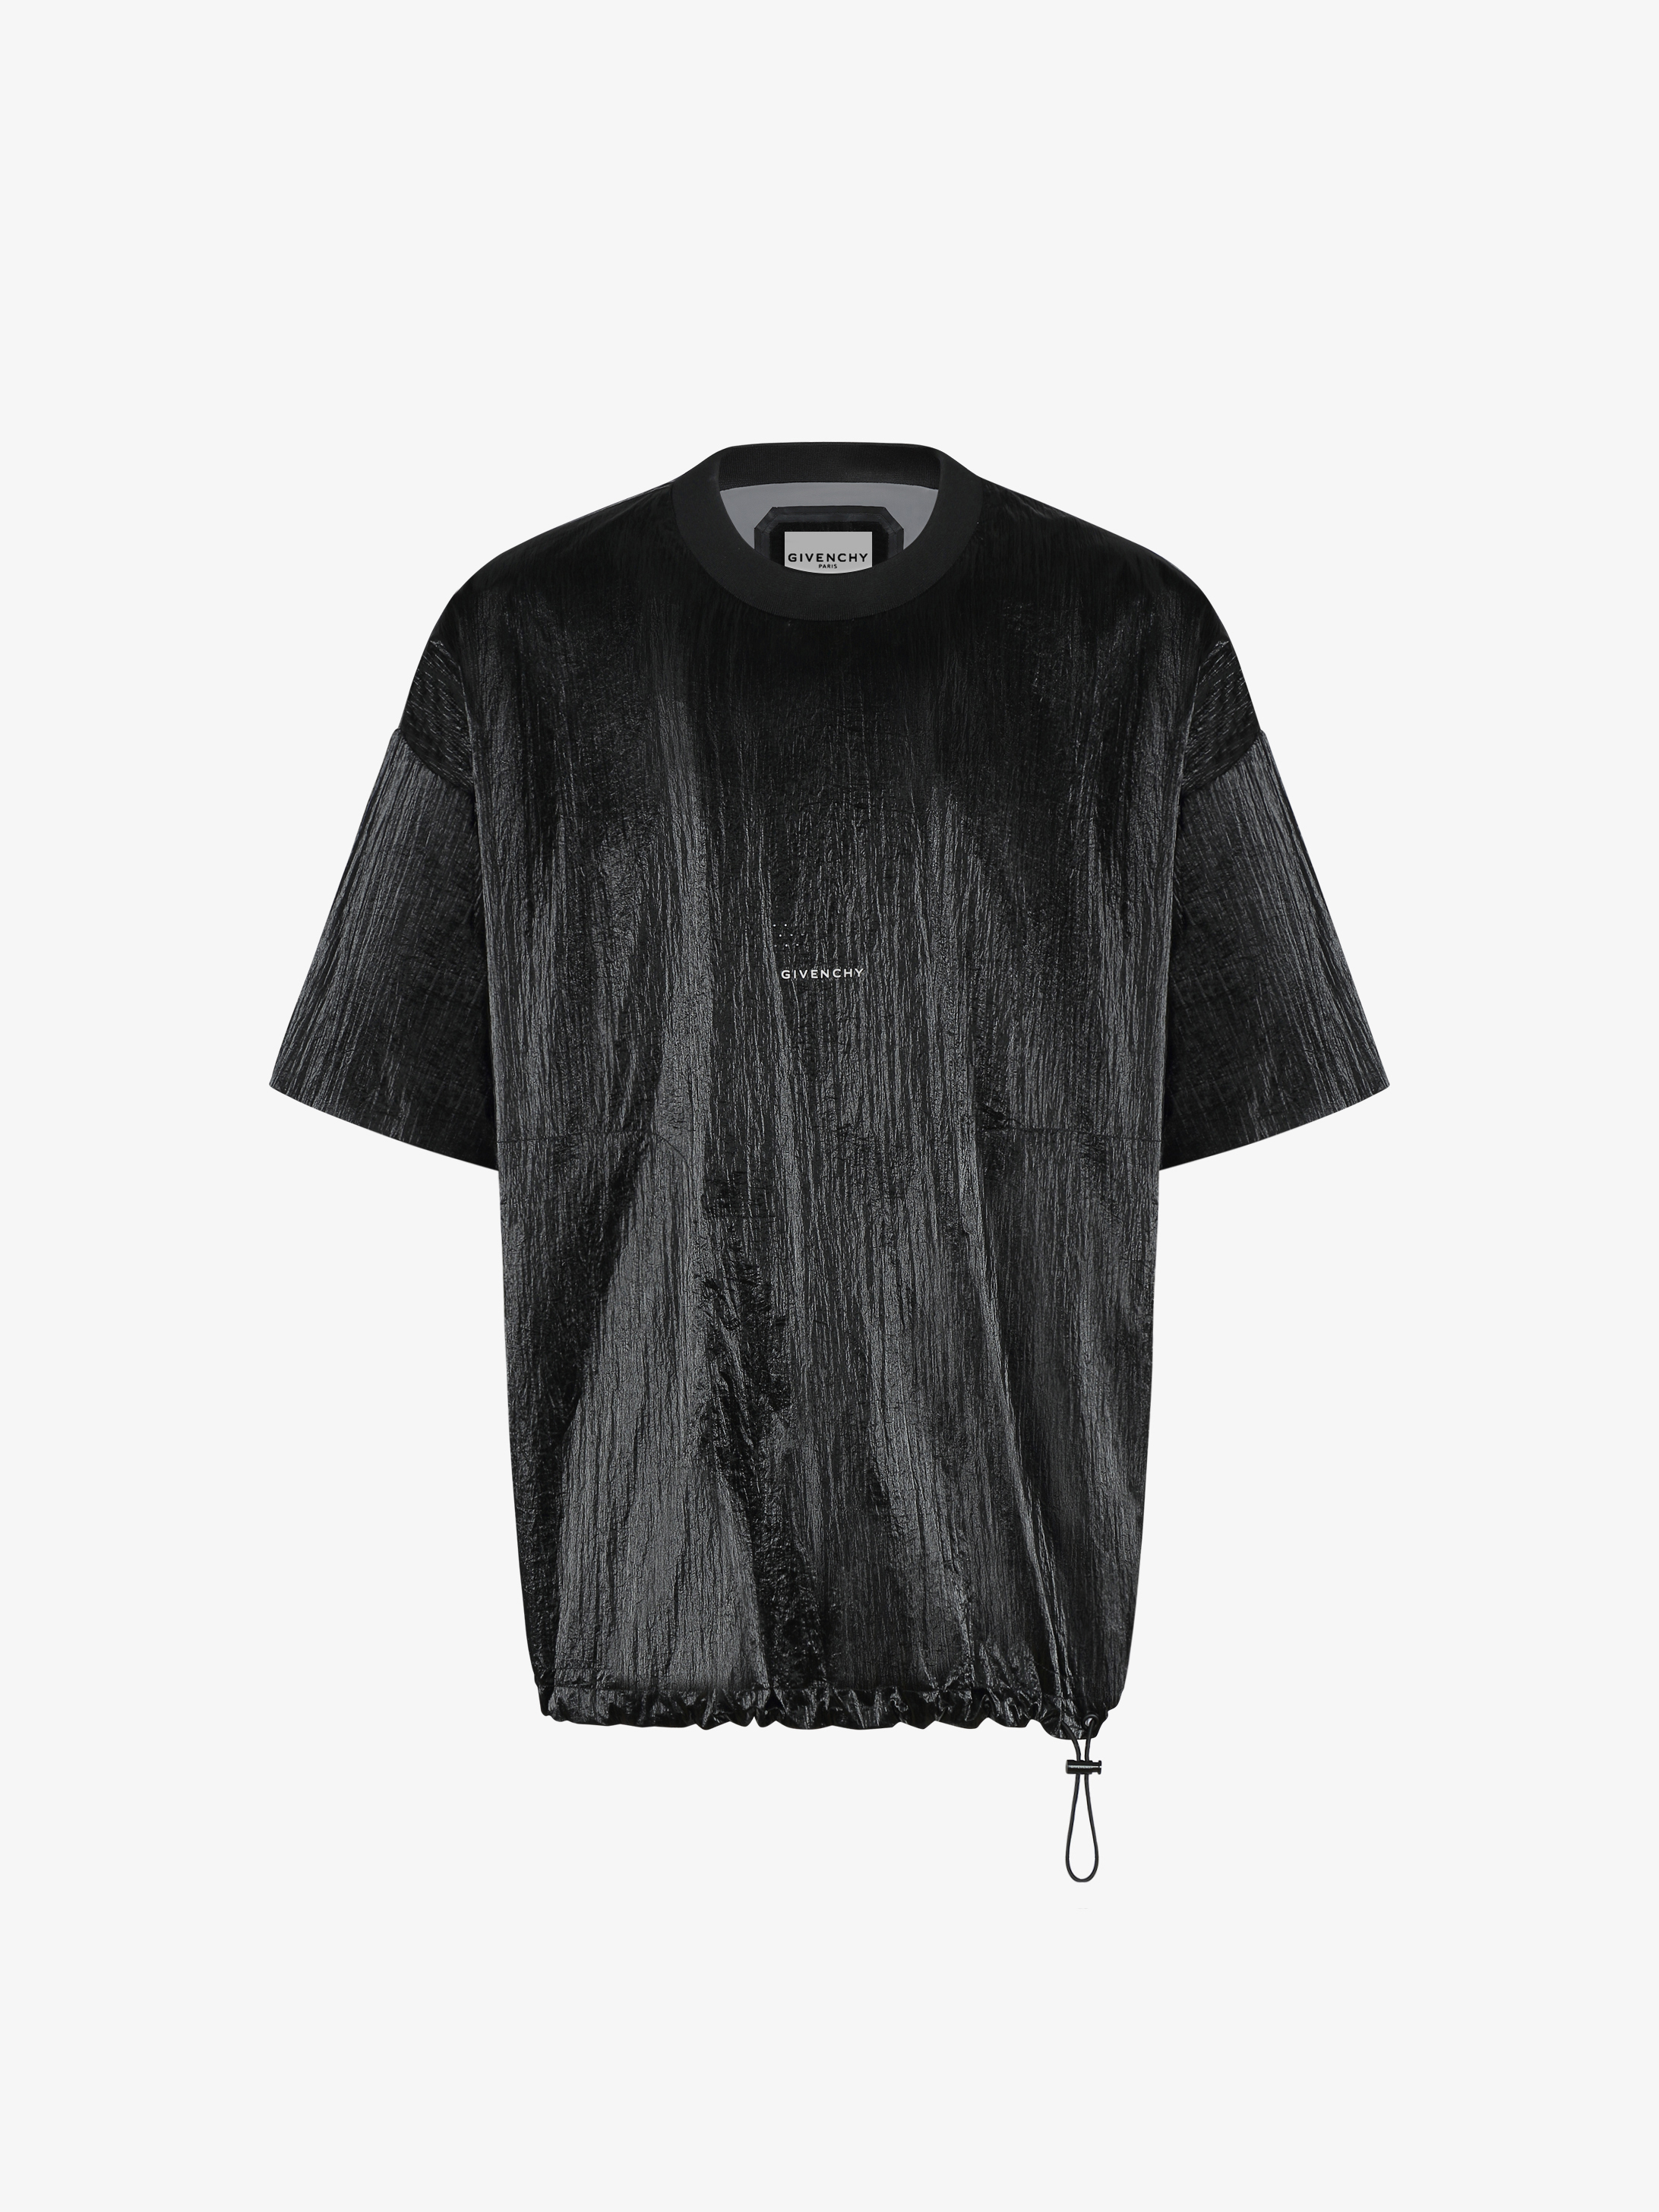 T-shirt GIVENCHY en nylon effet velours